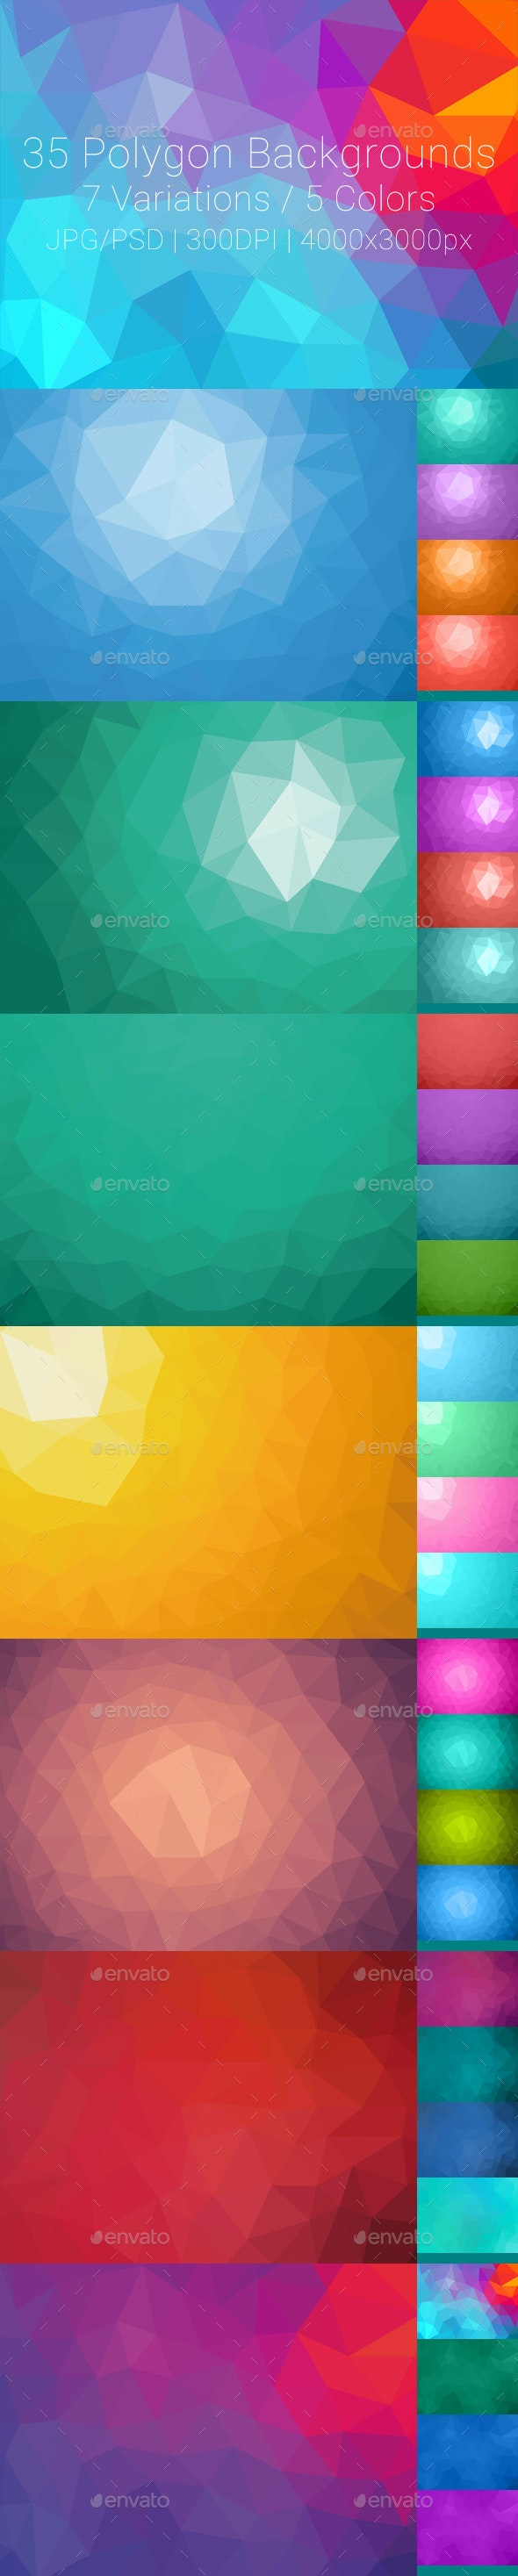 35 Polygon Backgrounds - Abstract Backgrounds